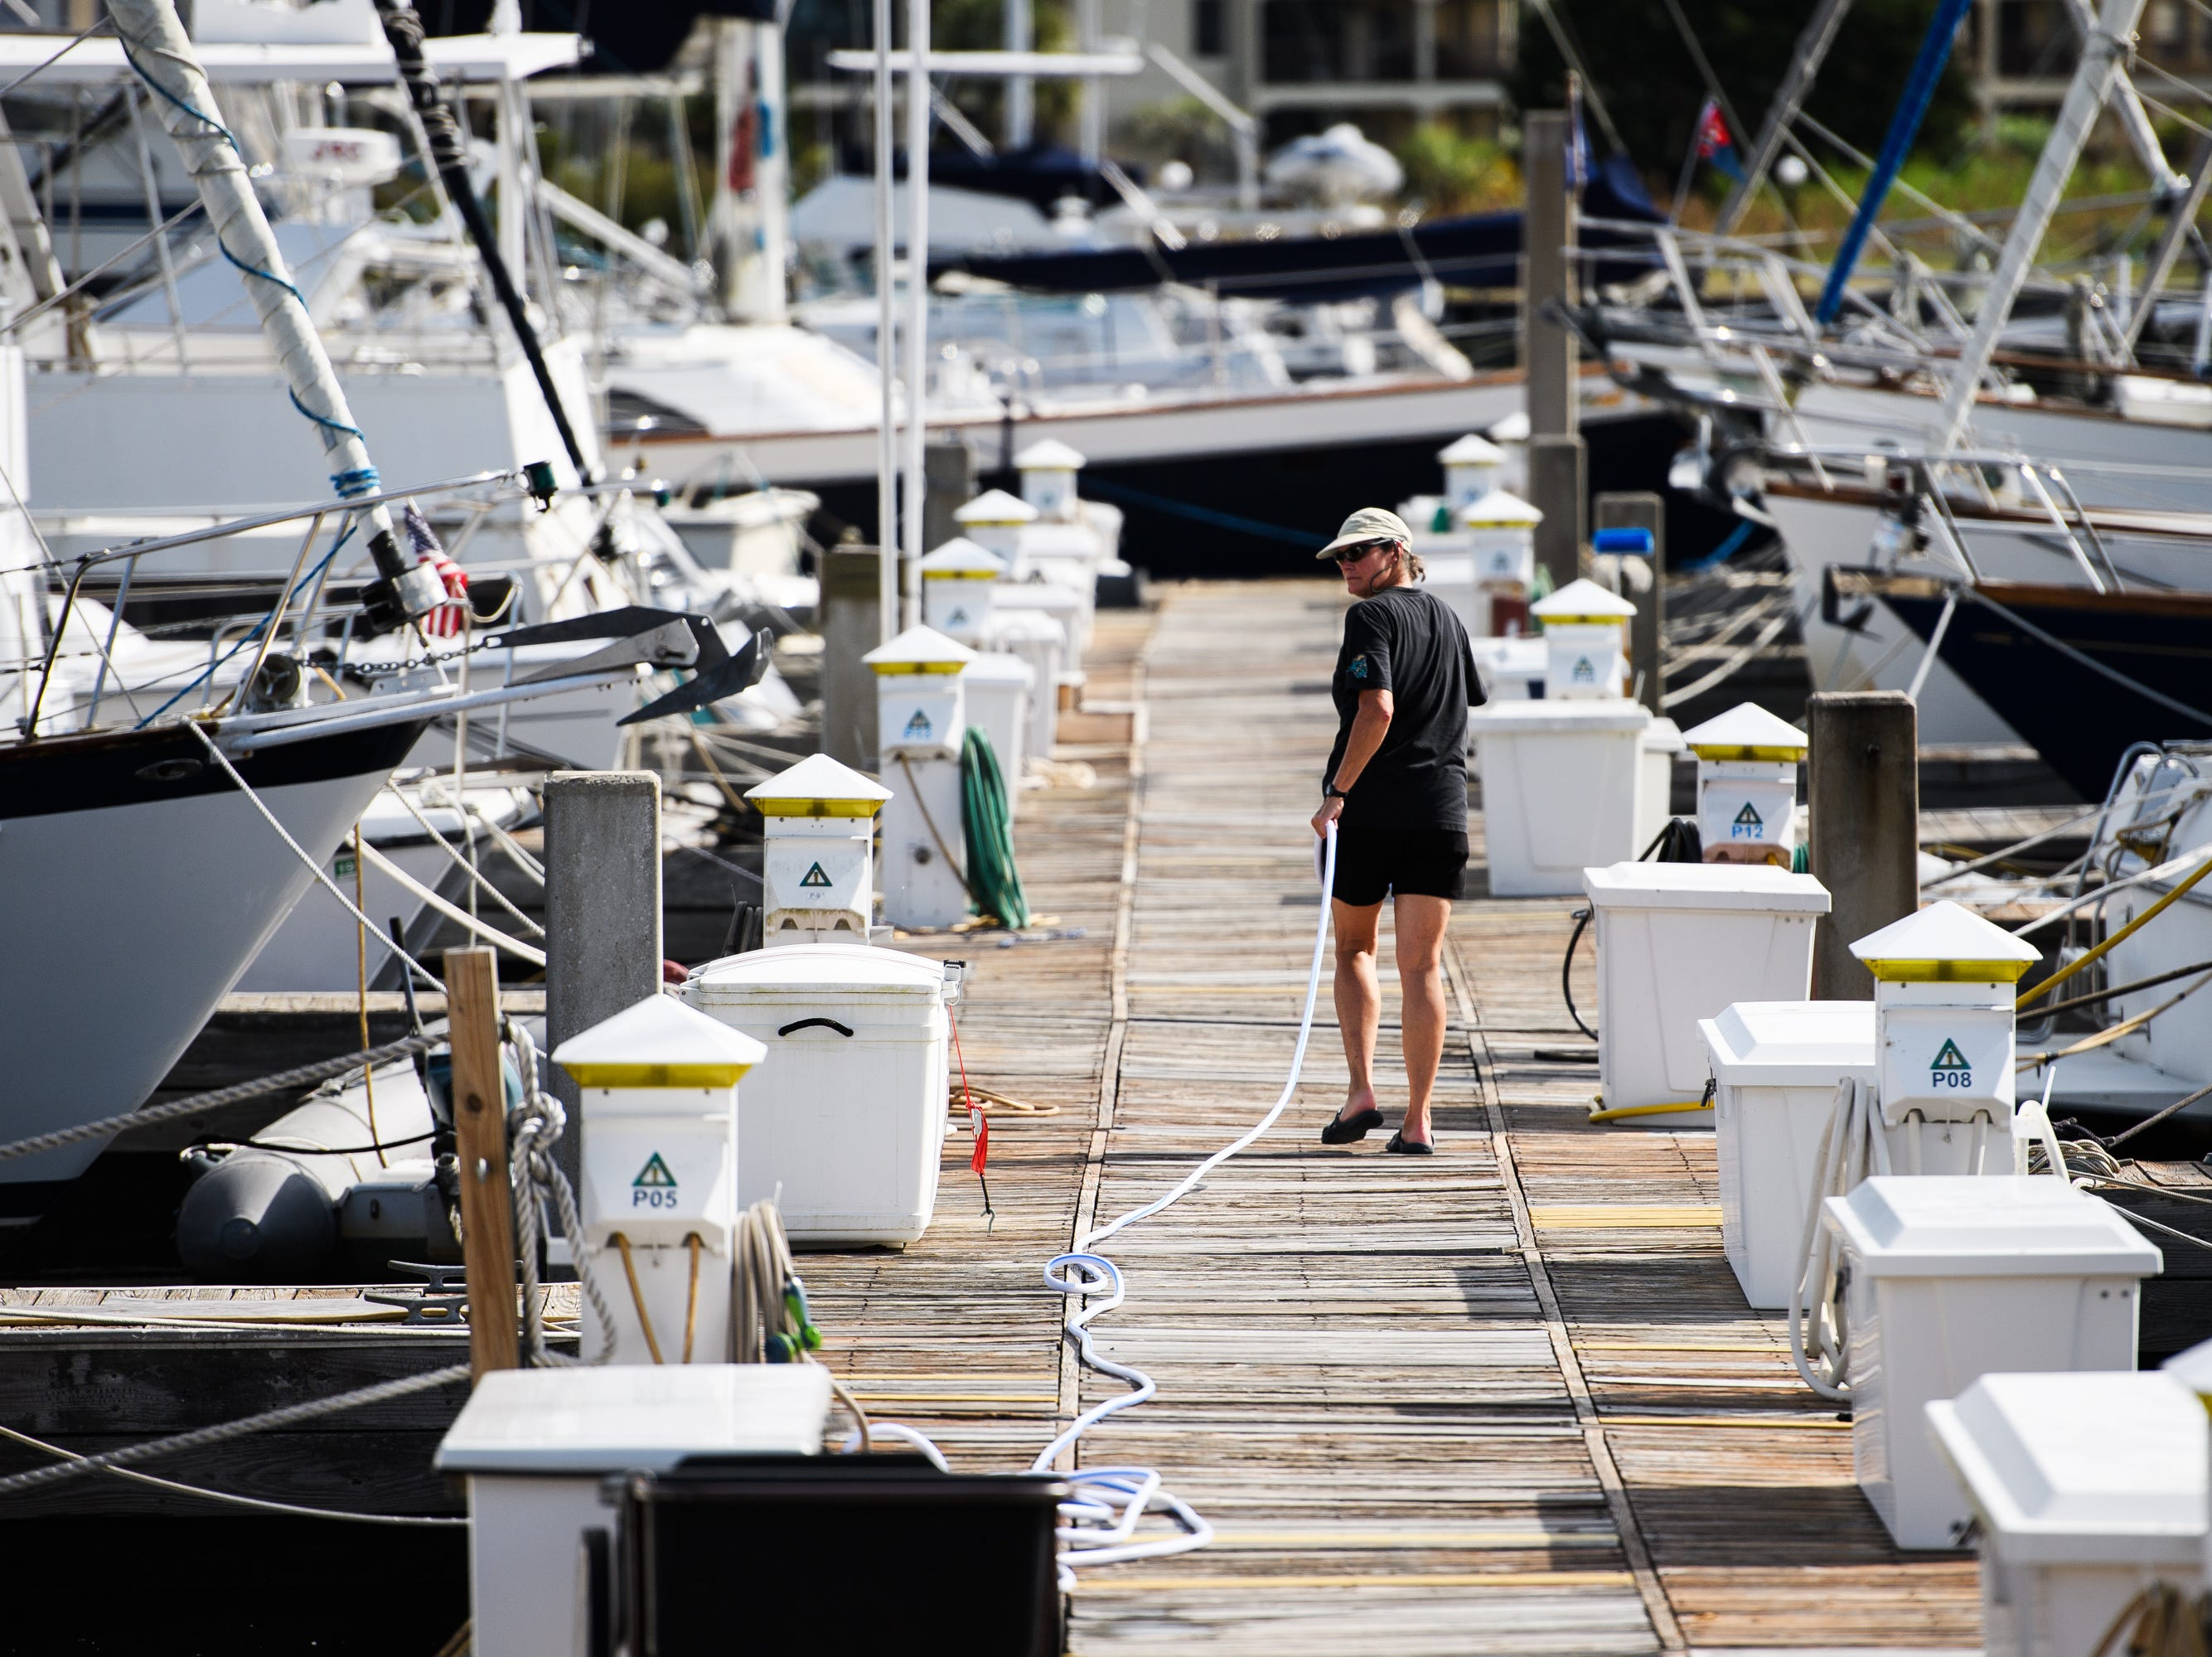 Barbara Coates finishes preparing her boat for Hurricane Florence at the Lightkeepers Marina in North Myrtle Beach on Wednesday, Sept. 12, 2018.